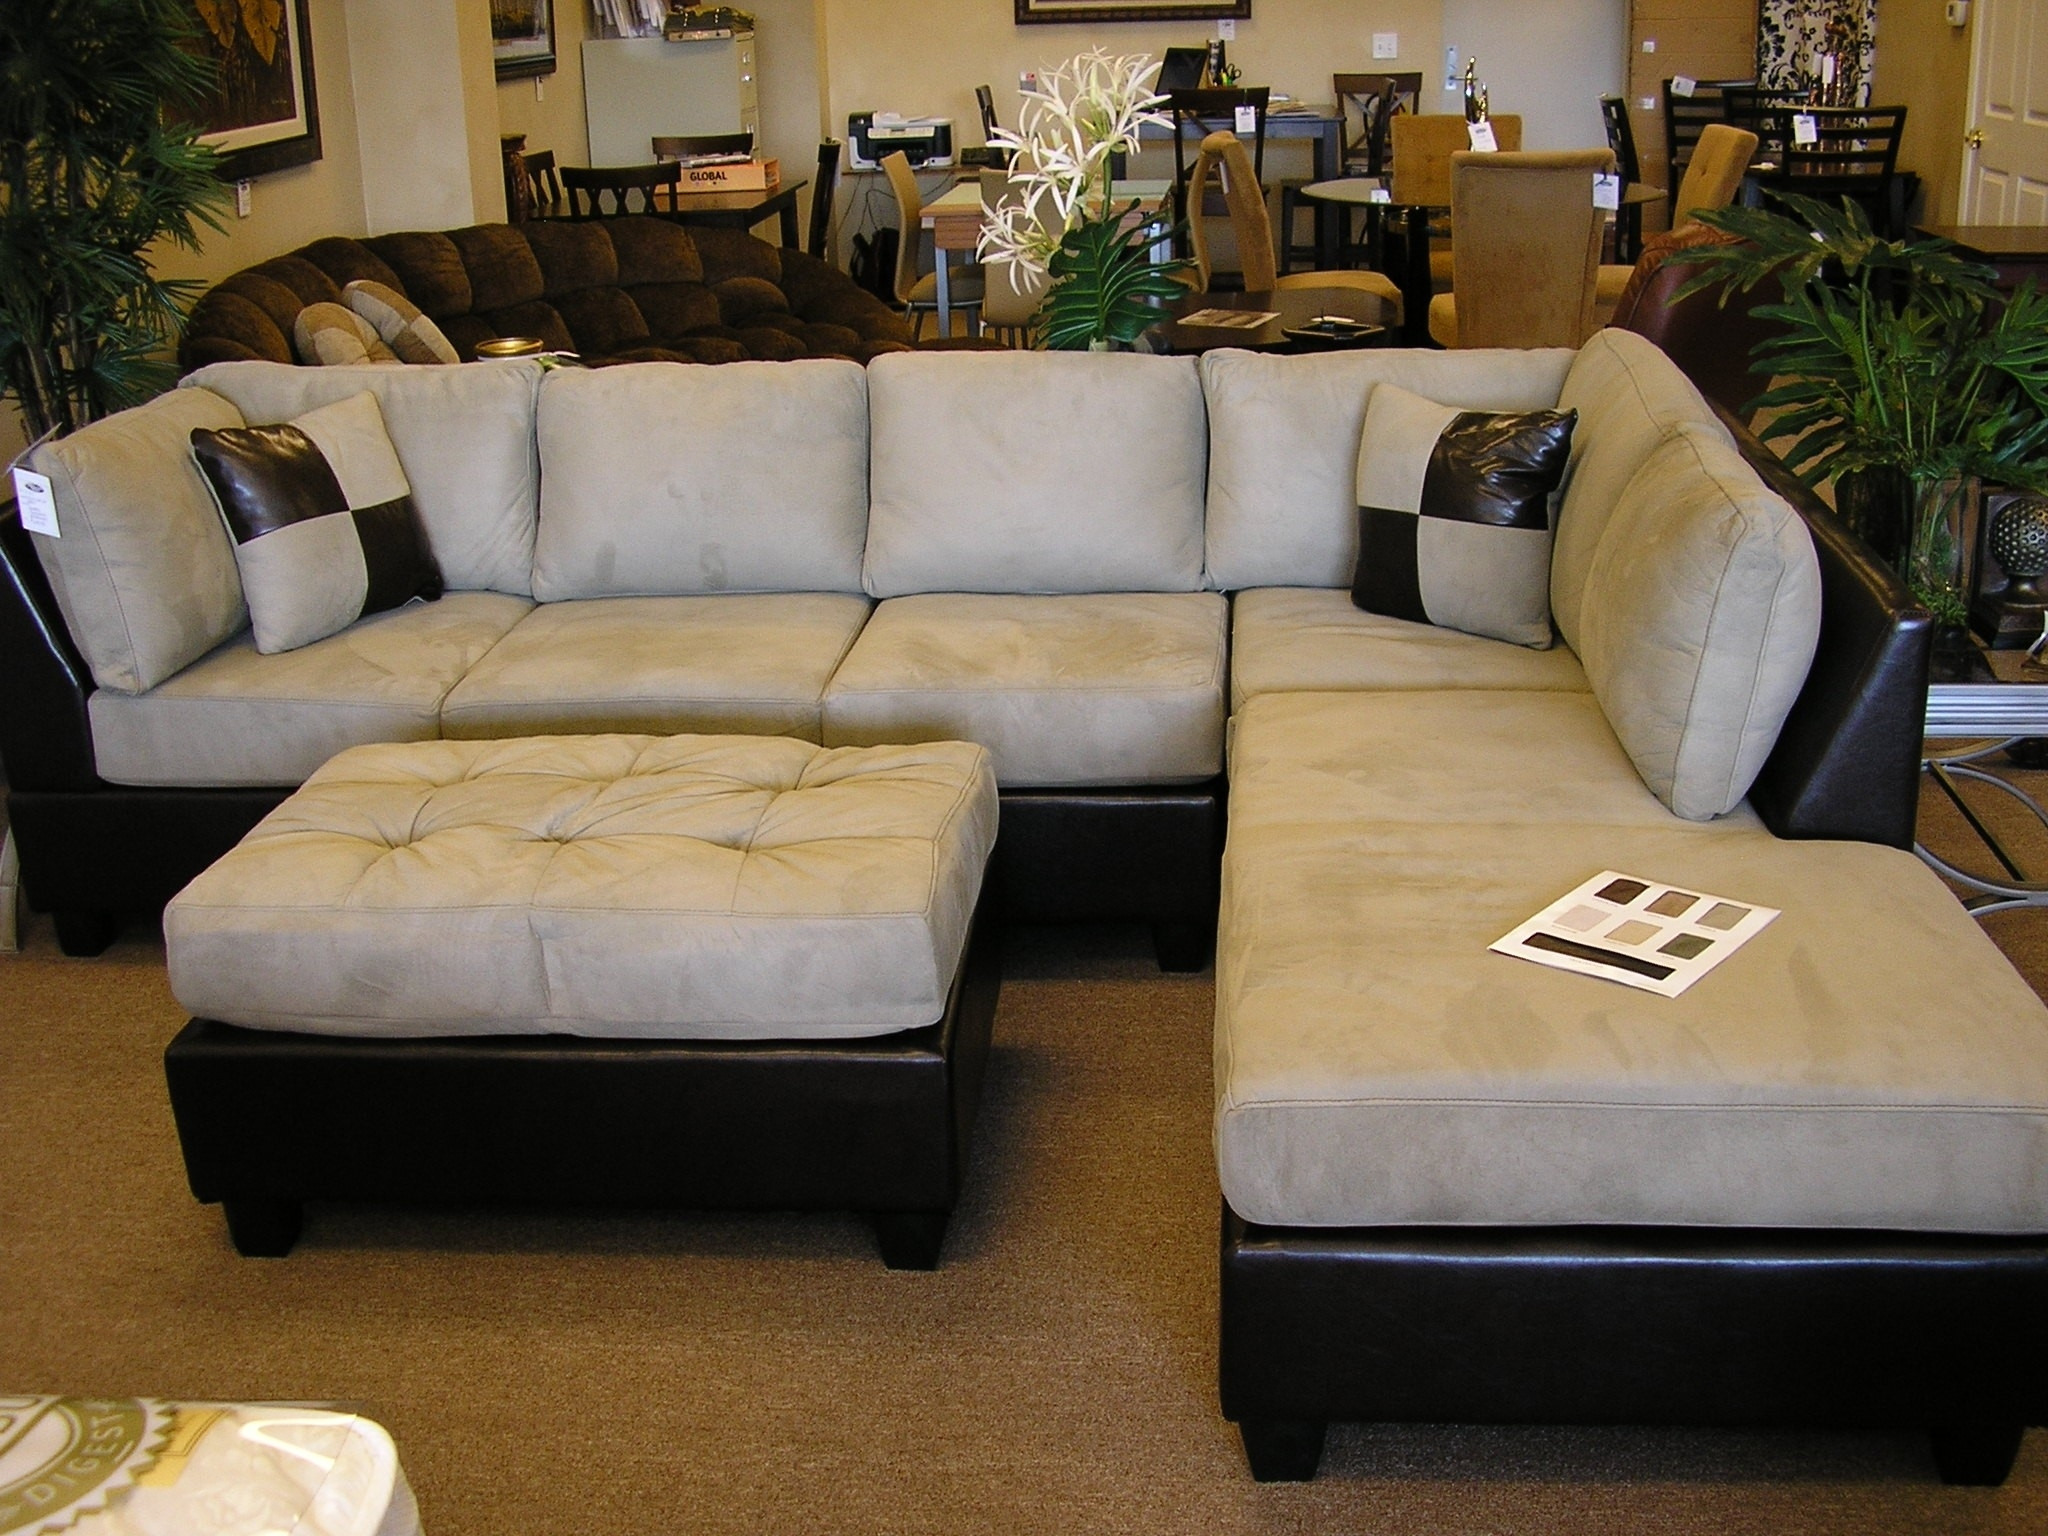 Beautiful Used Sectional Sofa With Lounger – Mediasupload Intended For Used Sectional Sofas (Image 1 of 10)